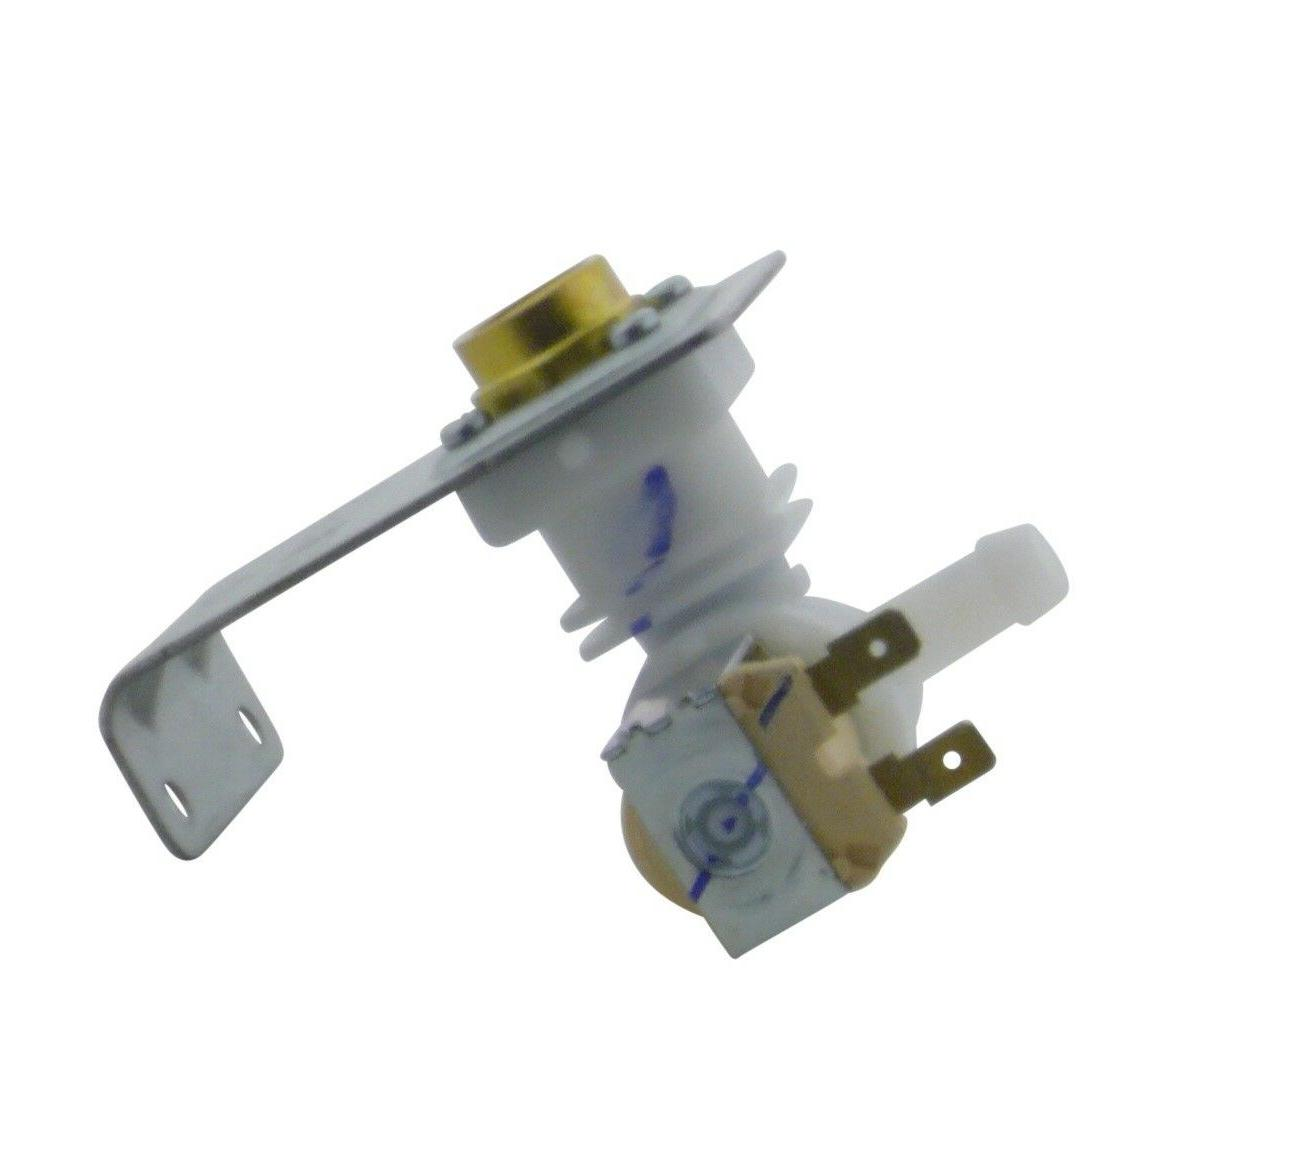 Replacement Water Inlet Valve for ER154637401